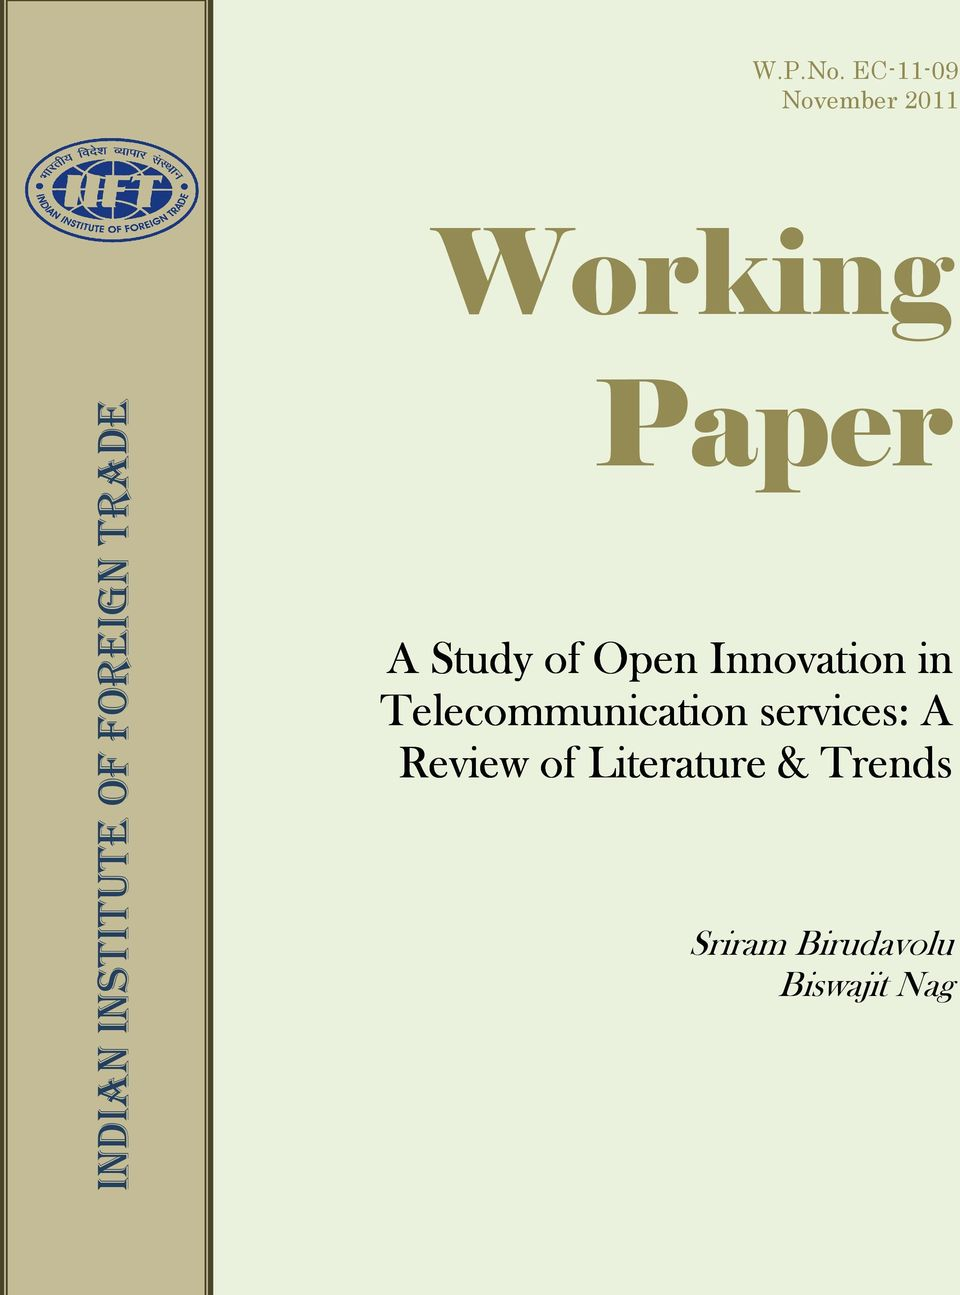 Study of Open Innovation in Telecommunication